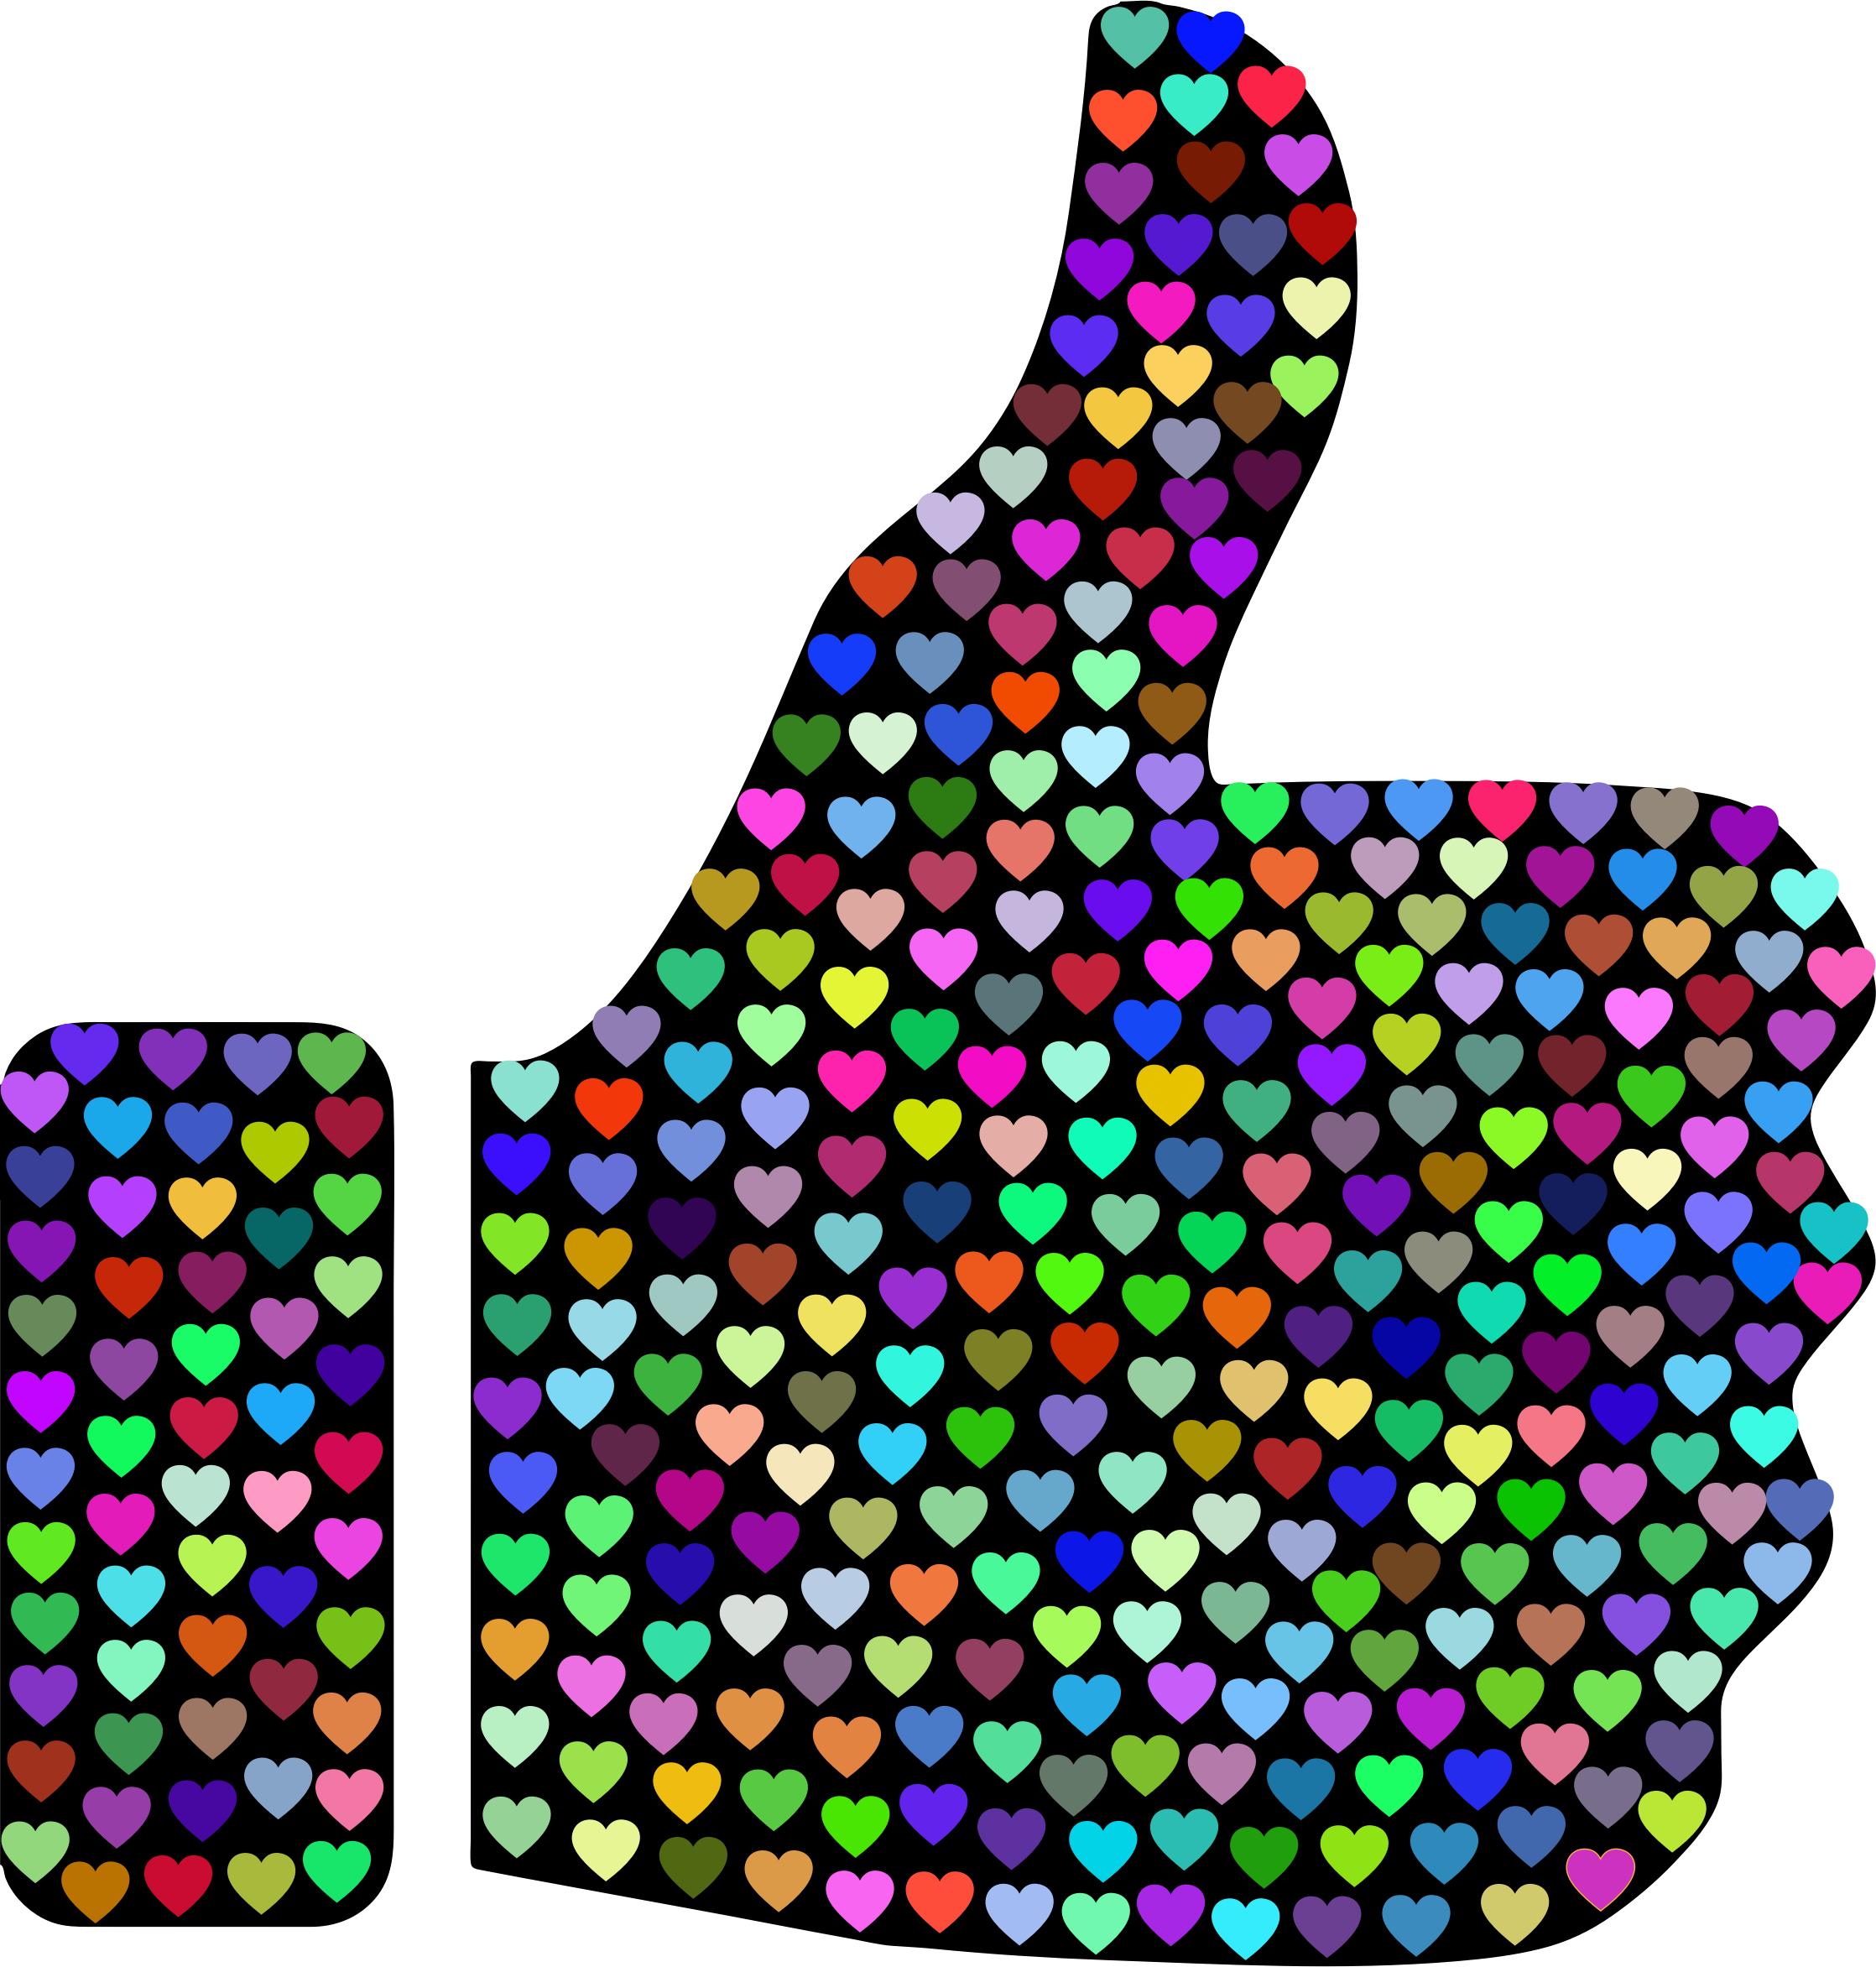 Prismatic Hearts Thumbs Up Silhouette 2 by GDJ